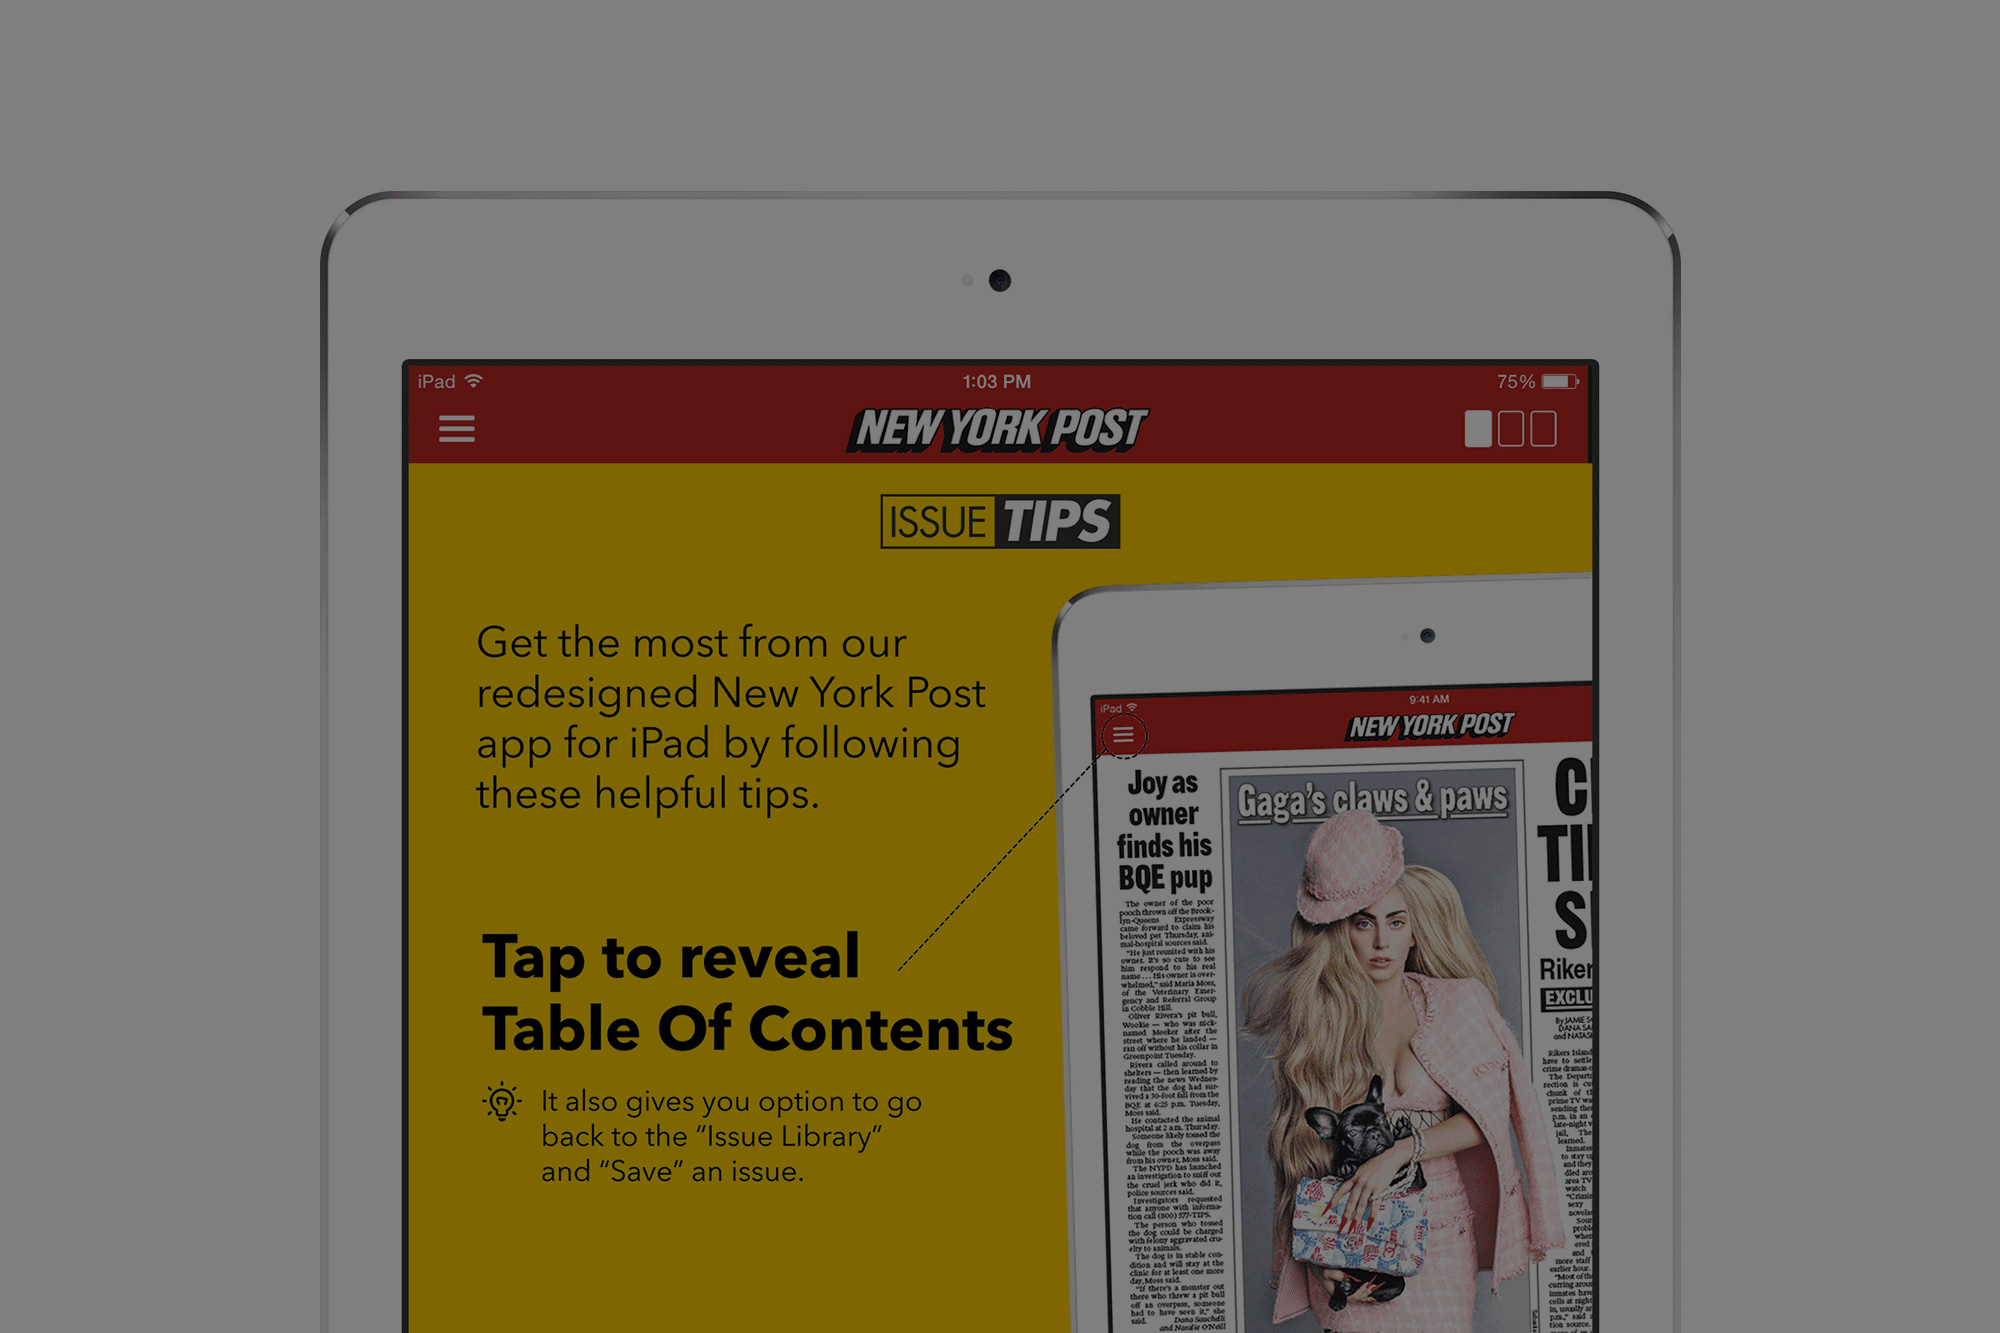 iPad App help website and promo for New York Post